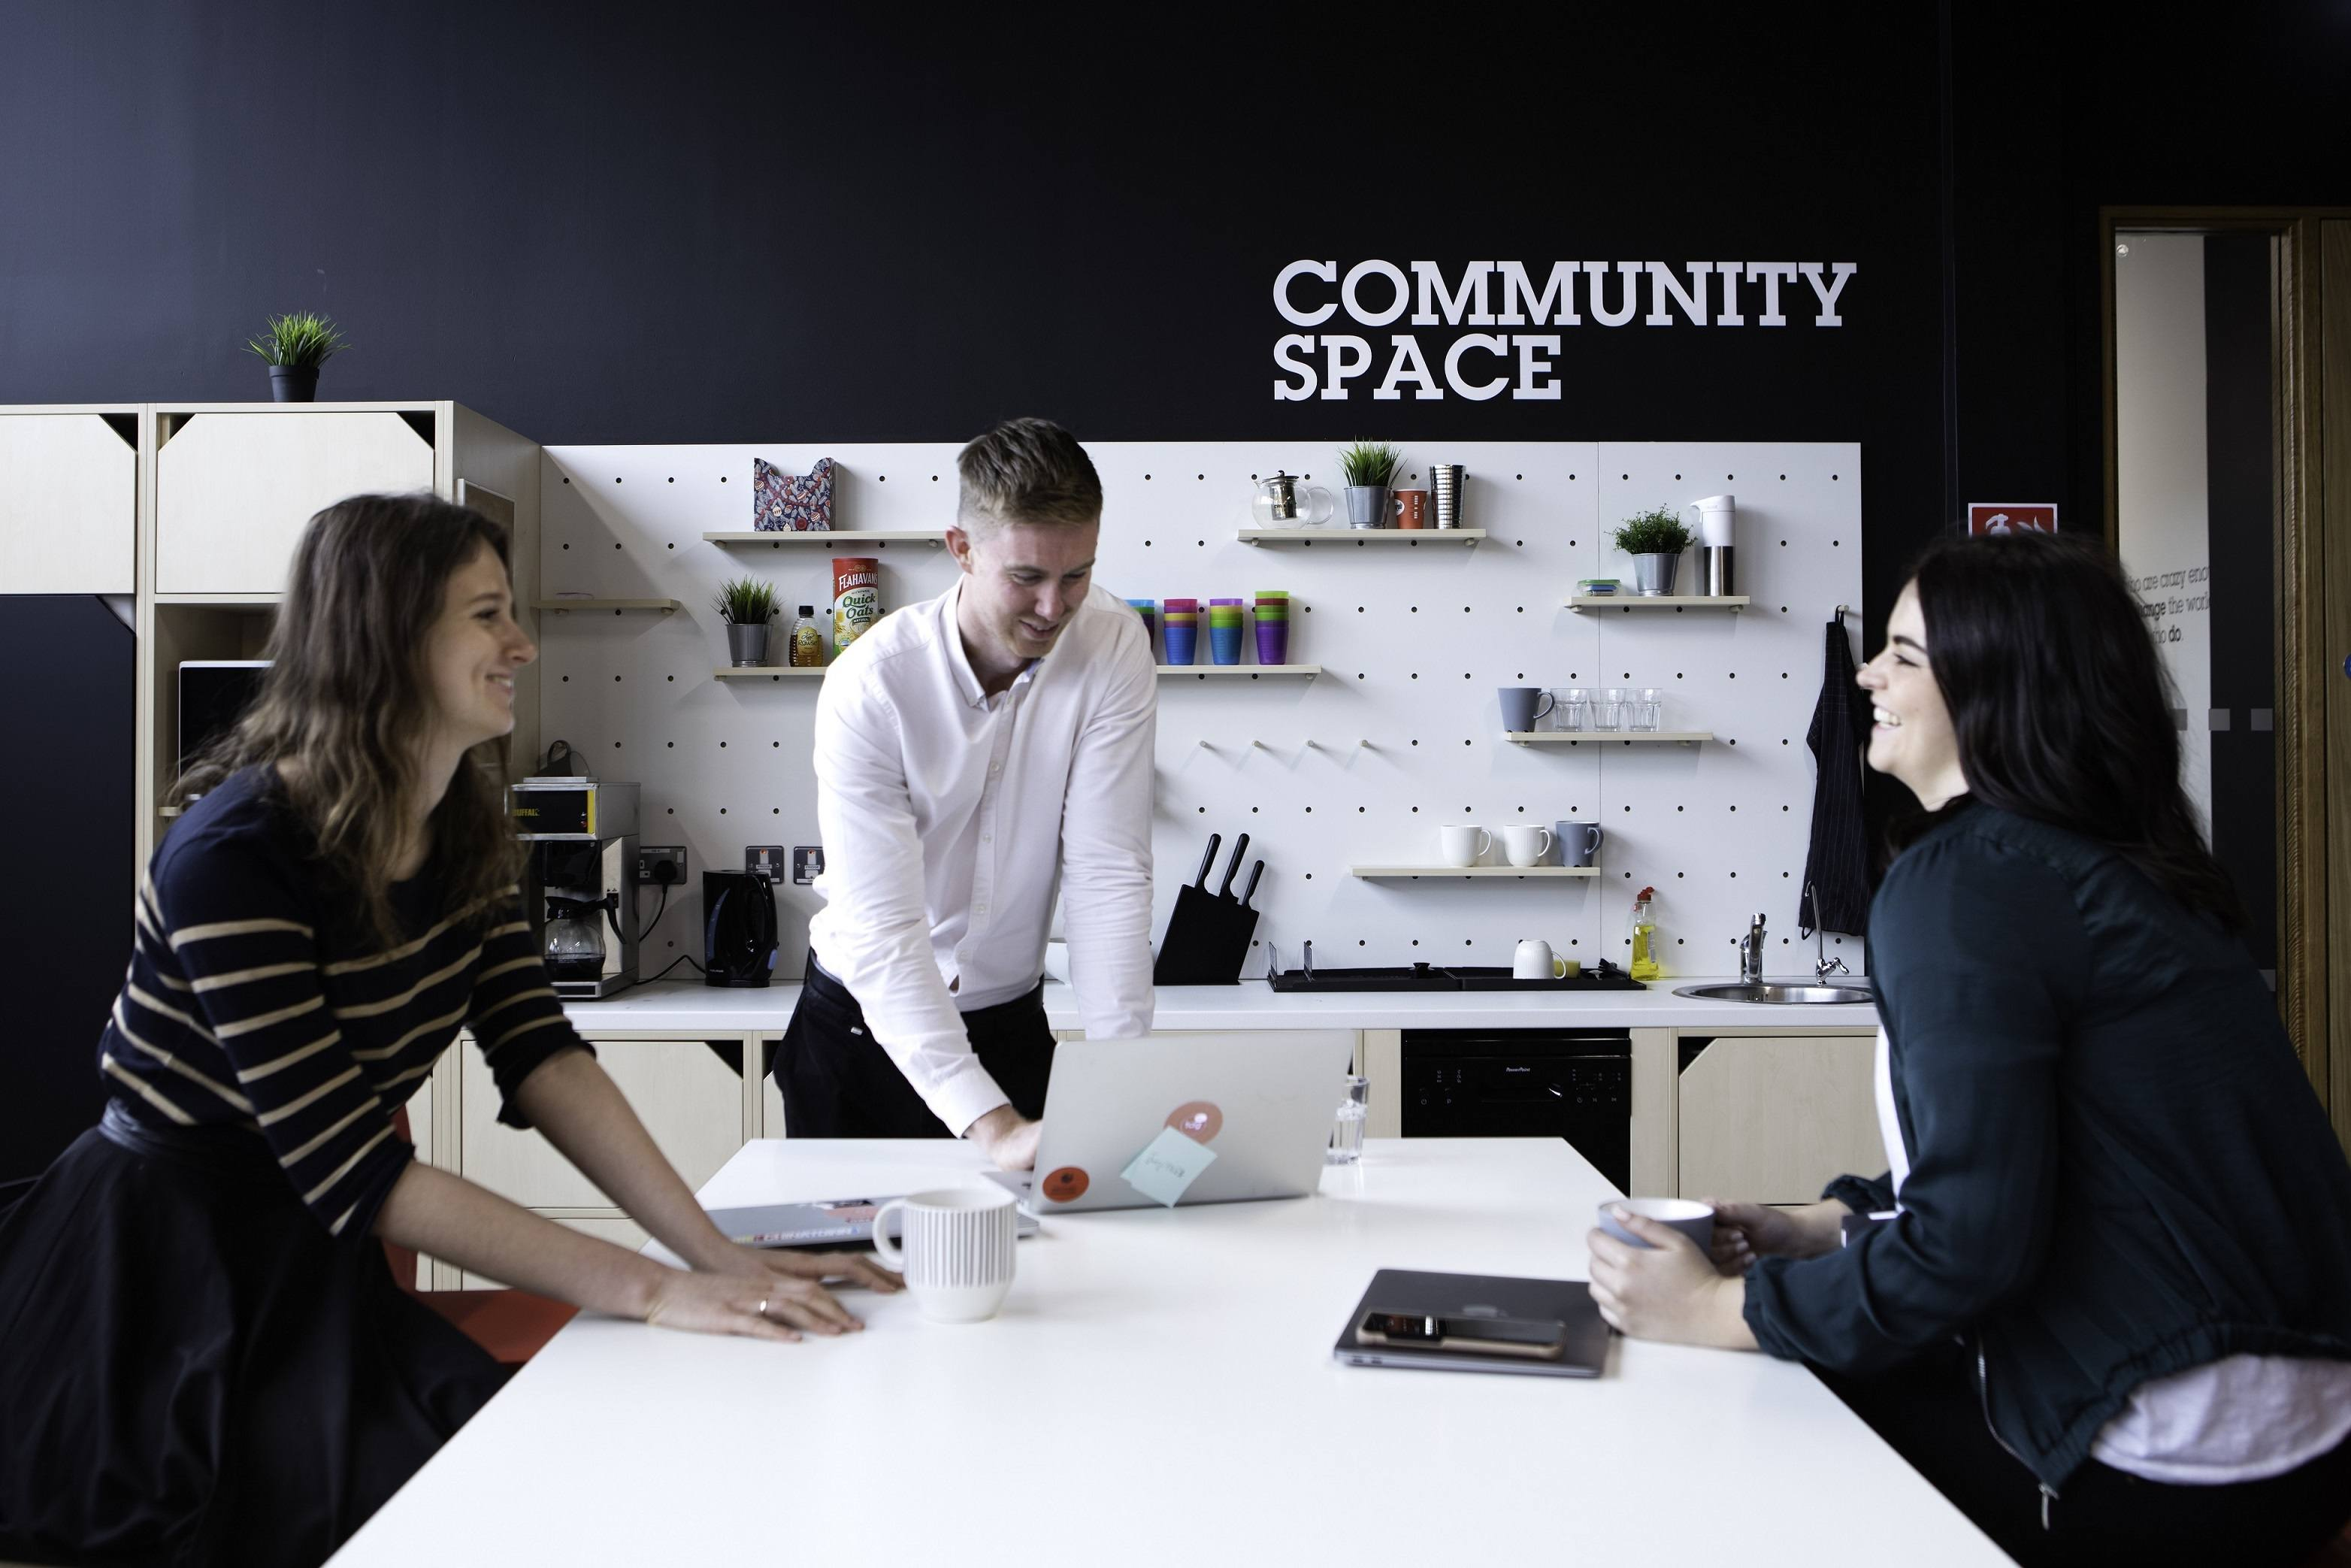 A young man in a white shirt leans on a white table beside two women on either side of him. They are wearing black shirts and using laptops at a table. In the background, the wall says 'community space' on the wall.